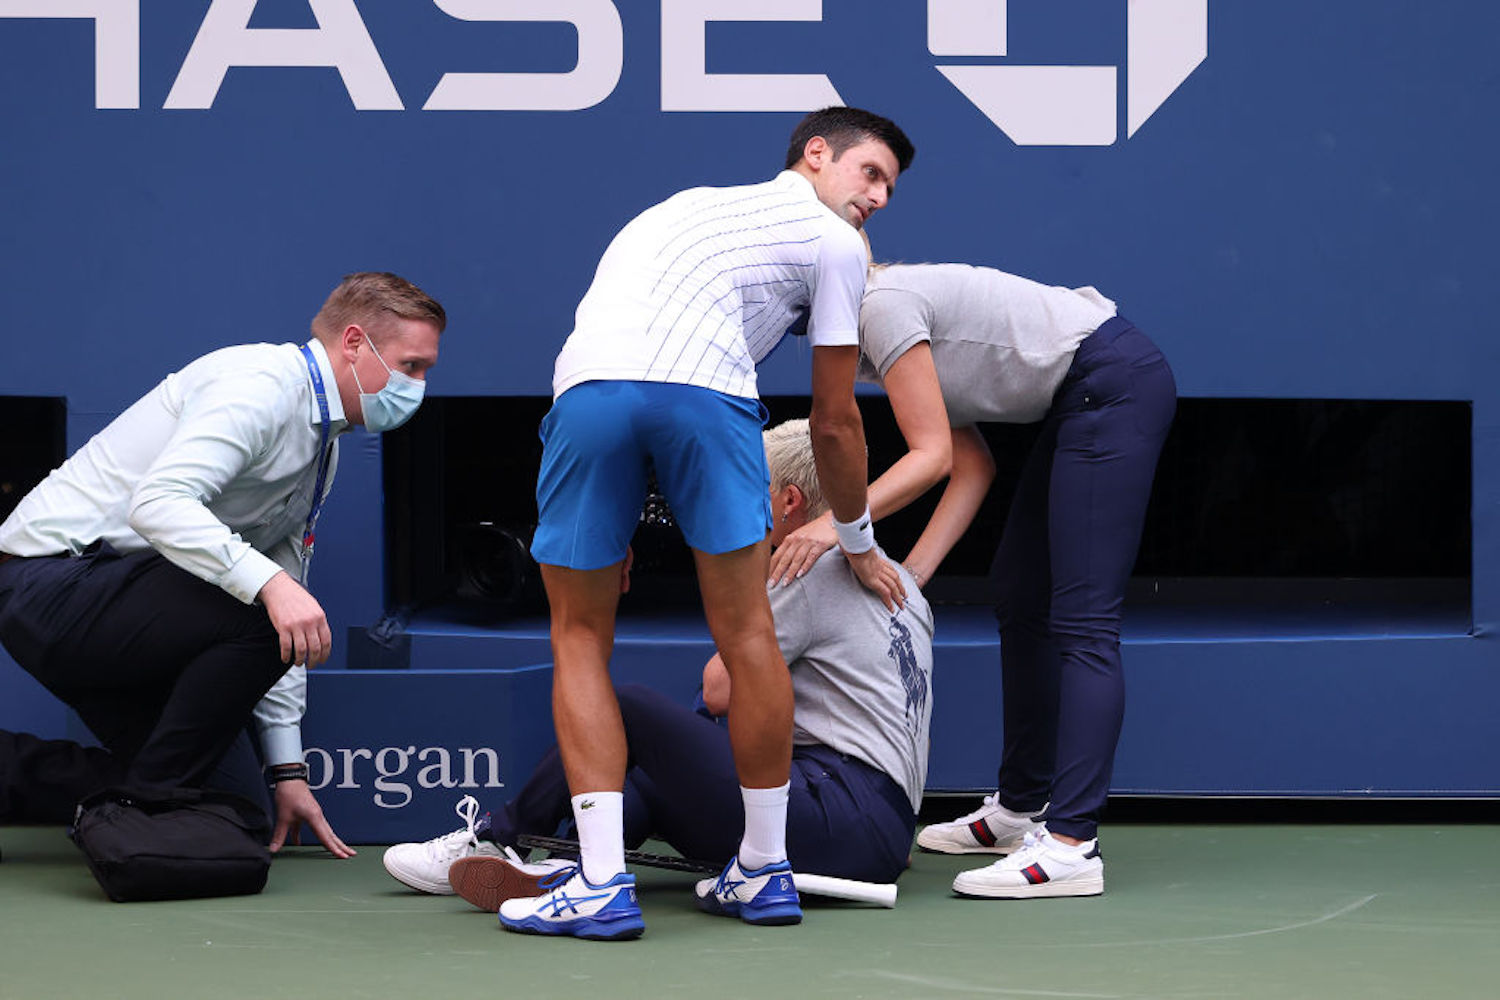 Novak Djokovic's temper tantrum got him kicked out of the U.S. Open, so who takes his place as the new favorite to win the tournament?